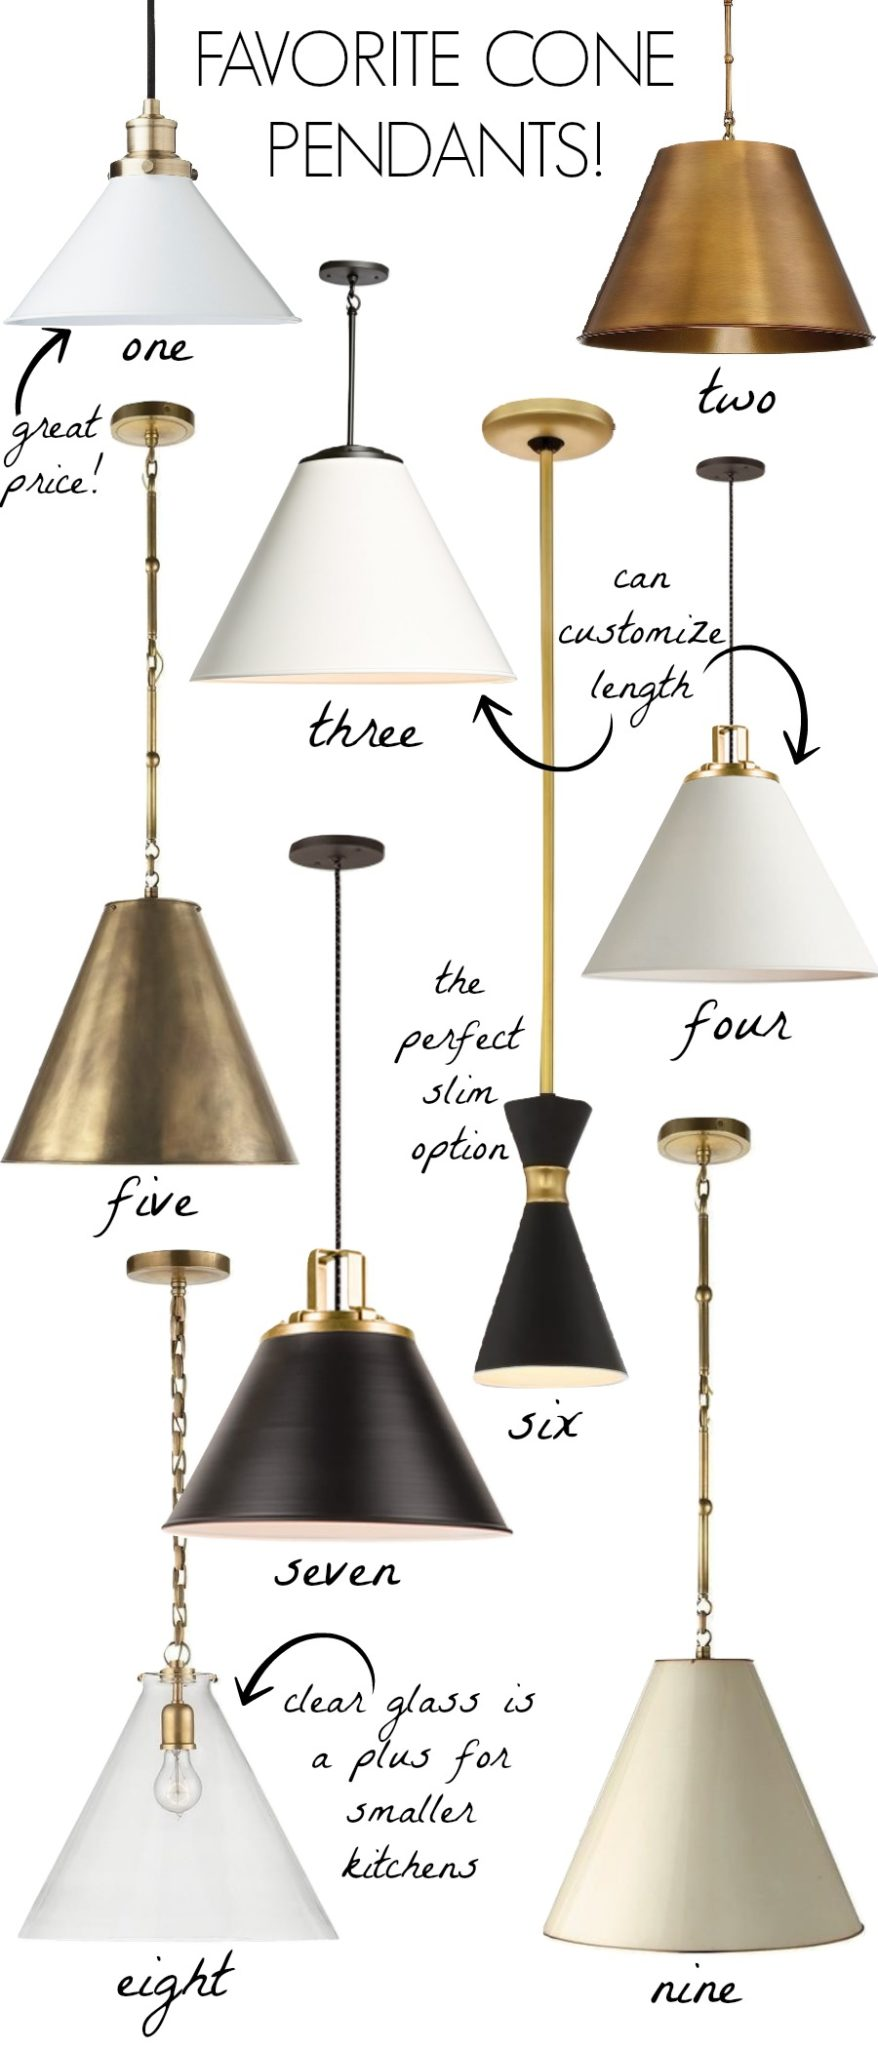 Black Kitchen Light Cone Pendants New Lighting For Our Kitchen Driven By Decor